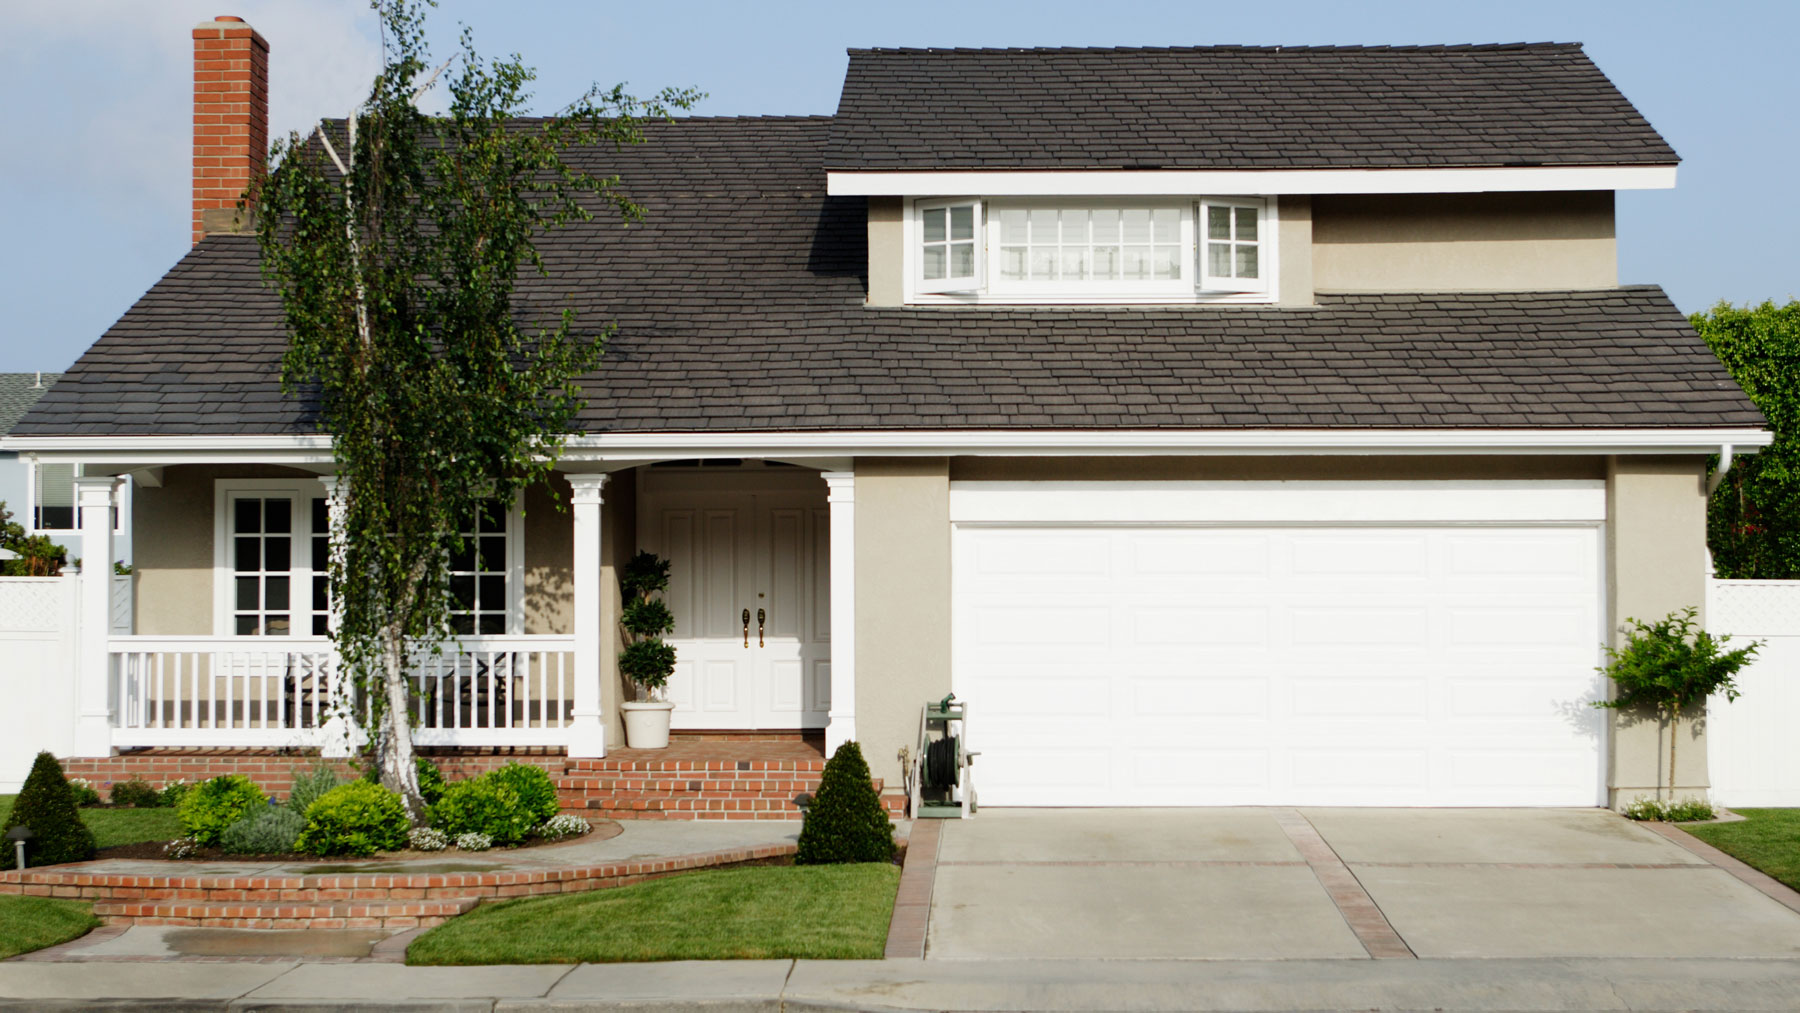 Curb appeal ideas: How to improve curb appeal (Pretty house exterior)